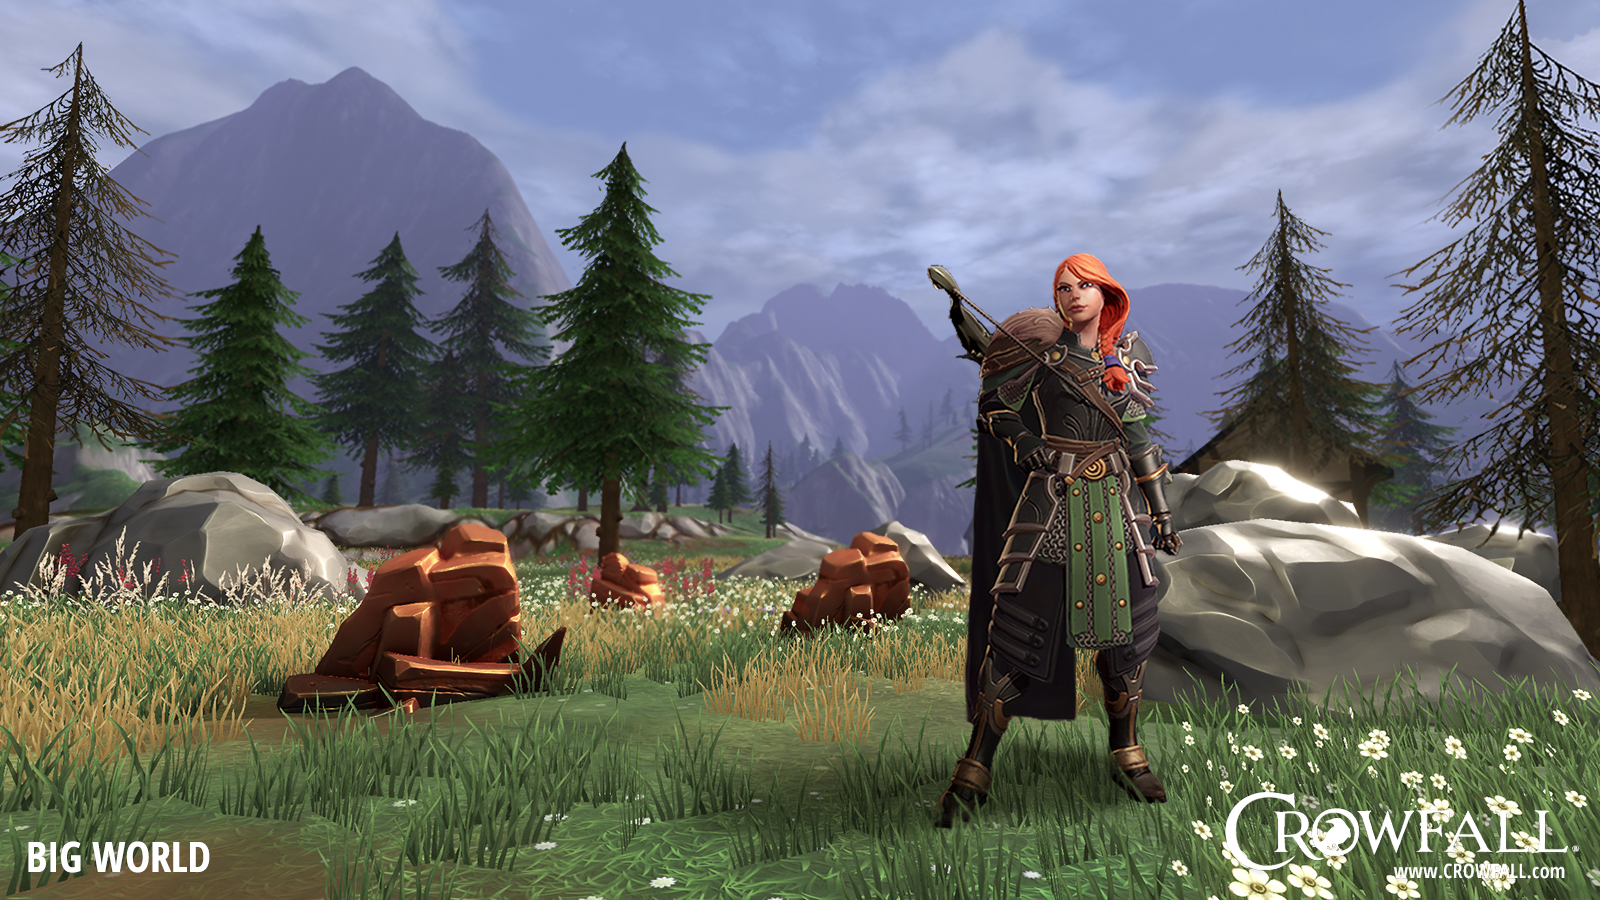 Ranger de Crowfall - Big World